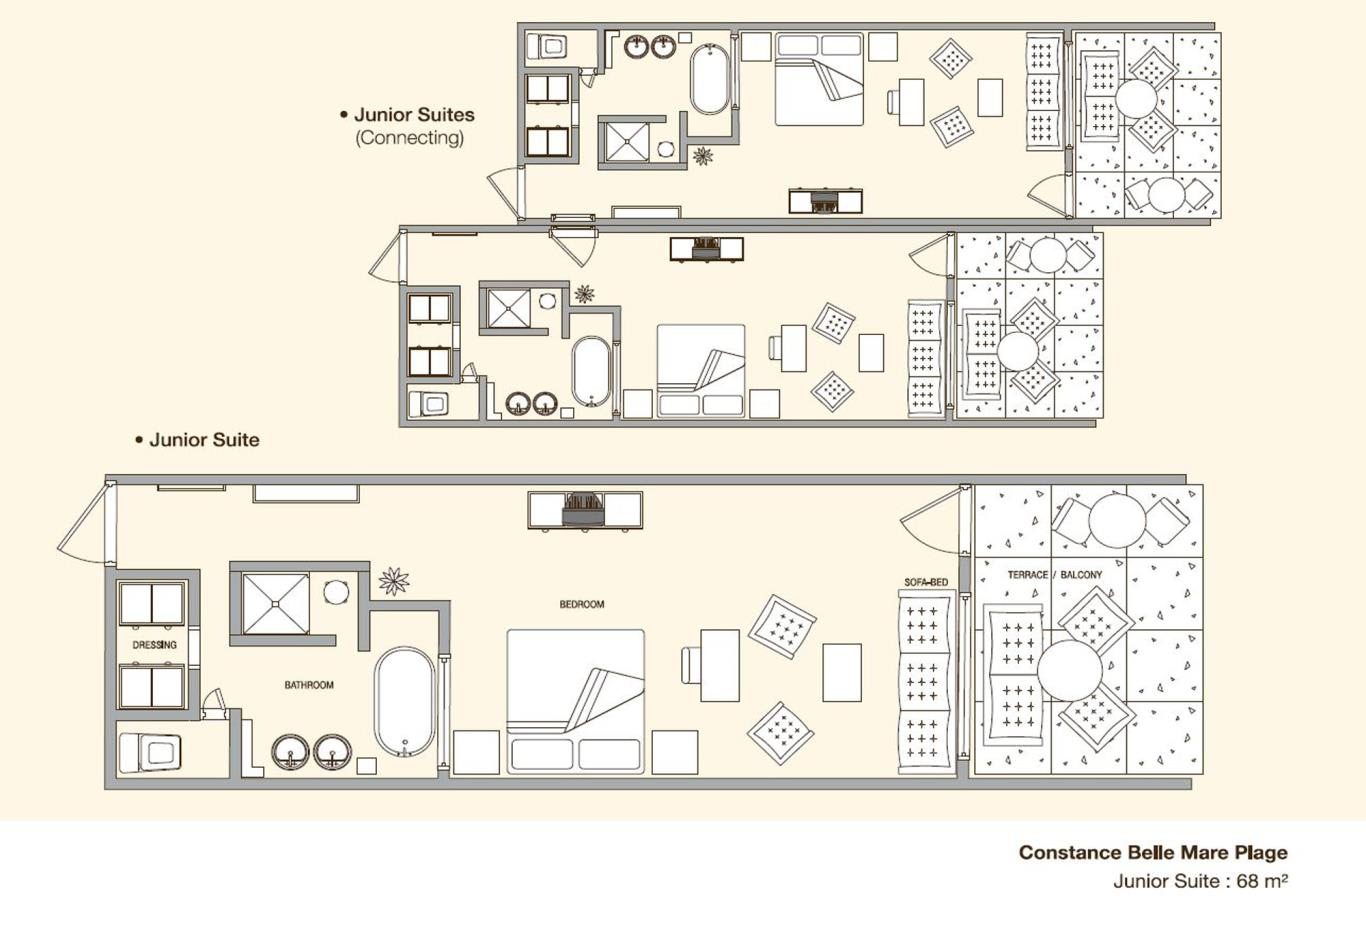 Beach Front Junior Suite Floorplan